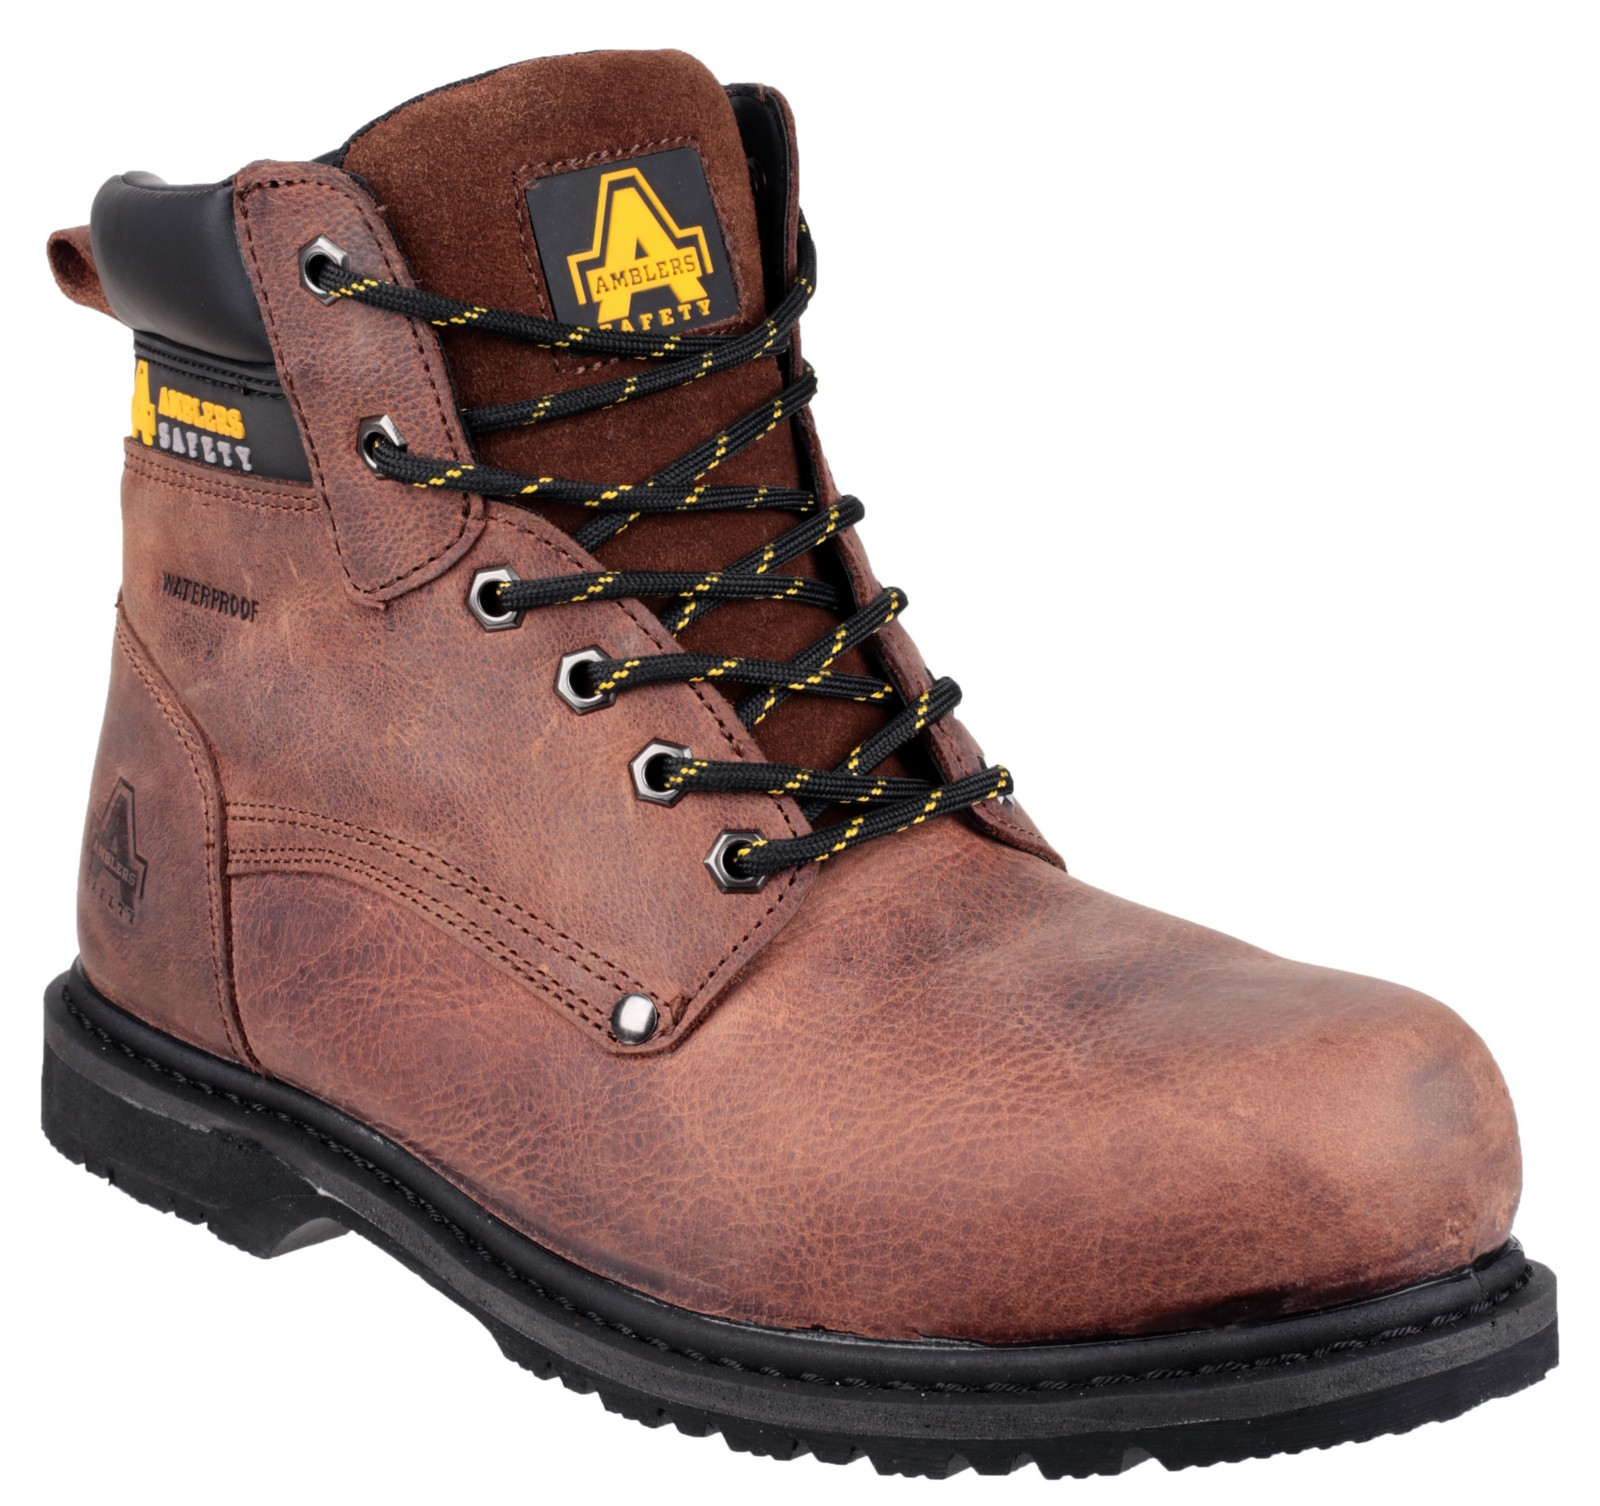 301366ce78d Amblers Safety 145 Welted S3 WP Steel Toe-cap and Mid-sole Safety Boots